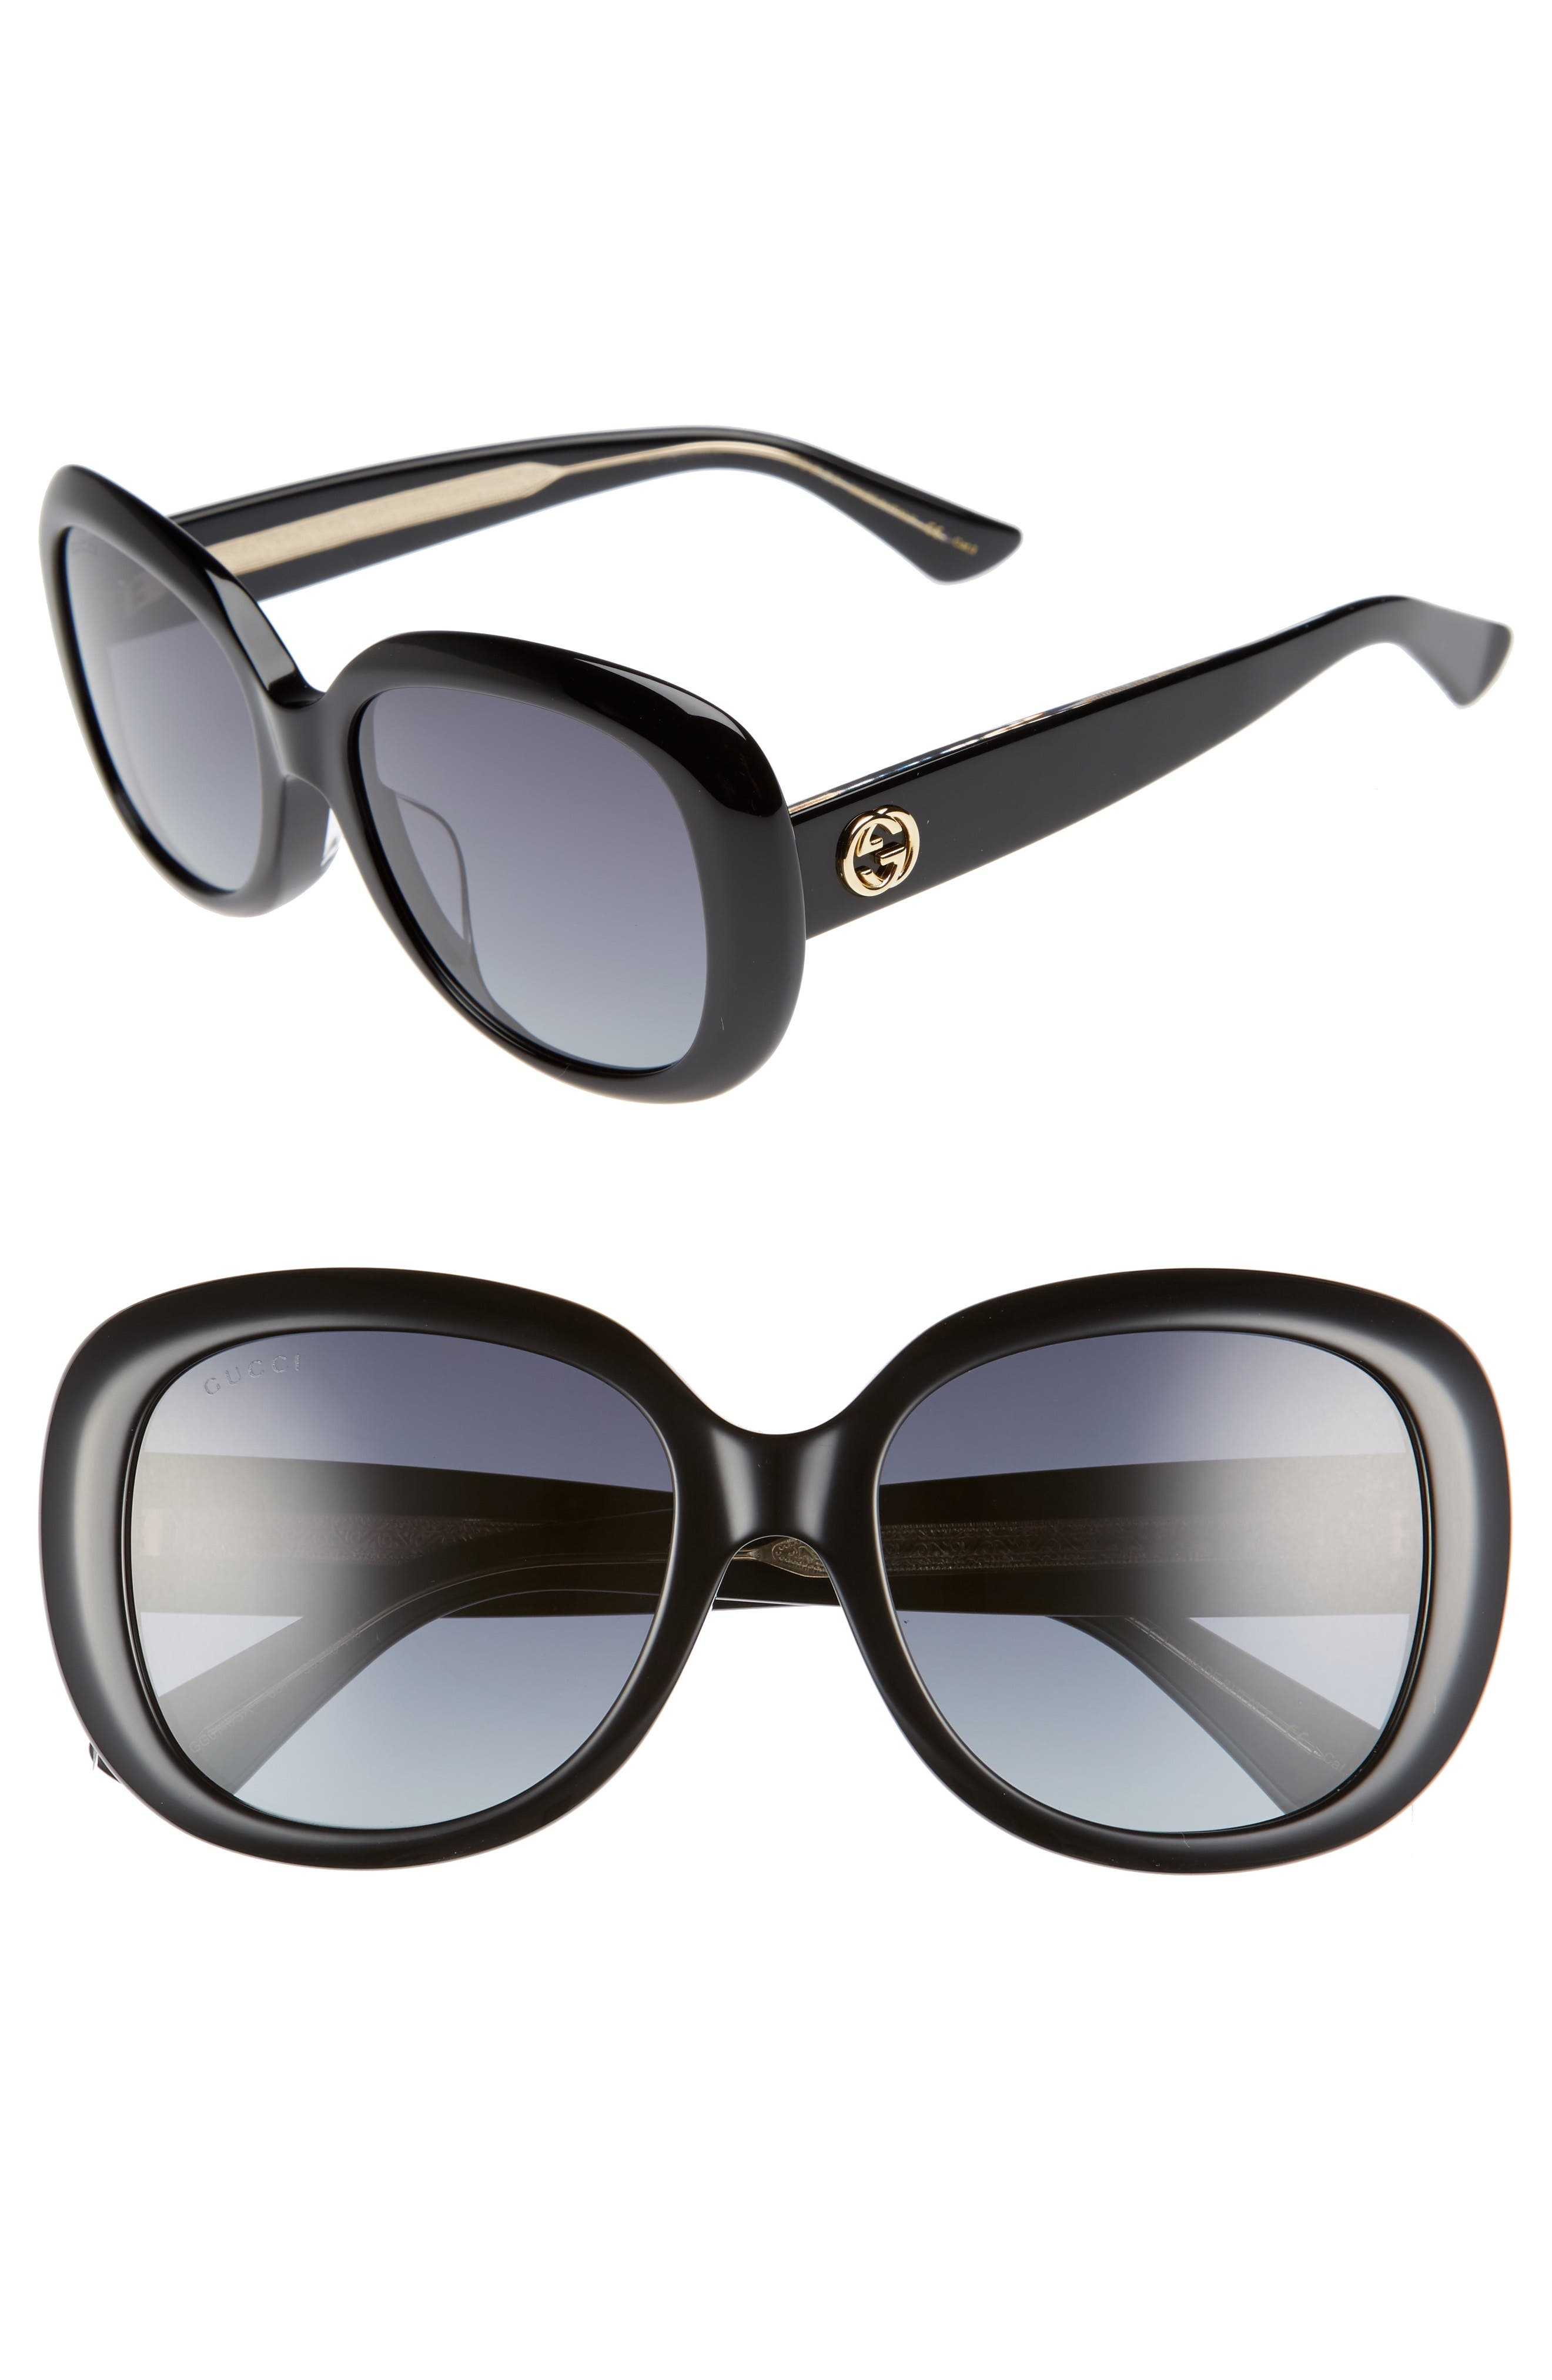 Main Image - Gucci 55mm Rectangular Sunglasses